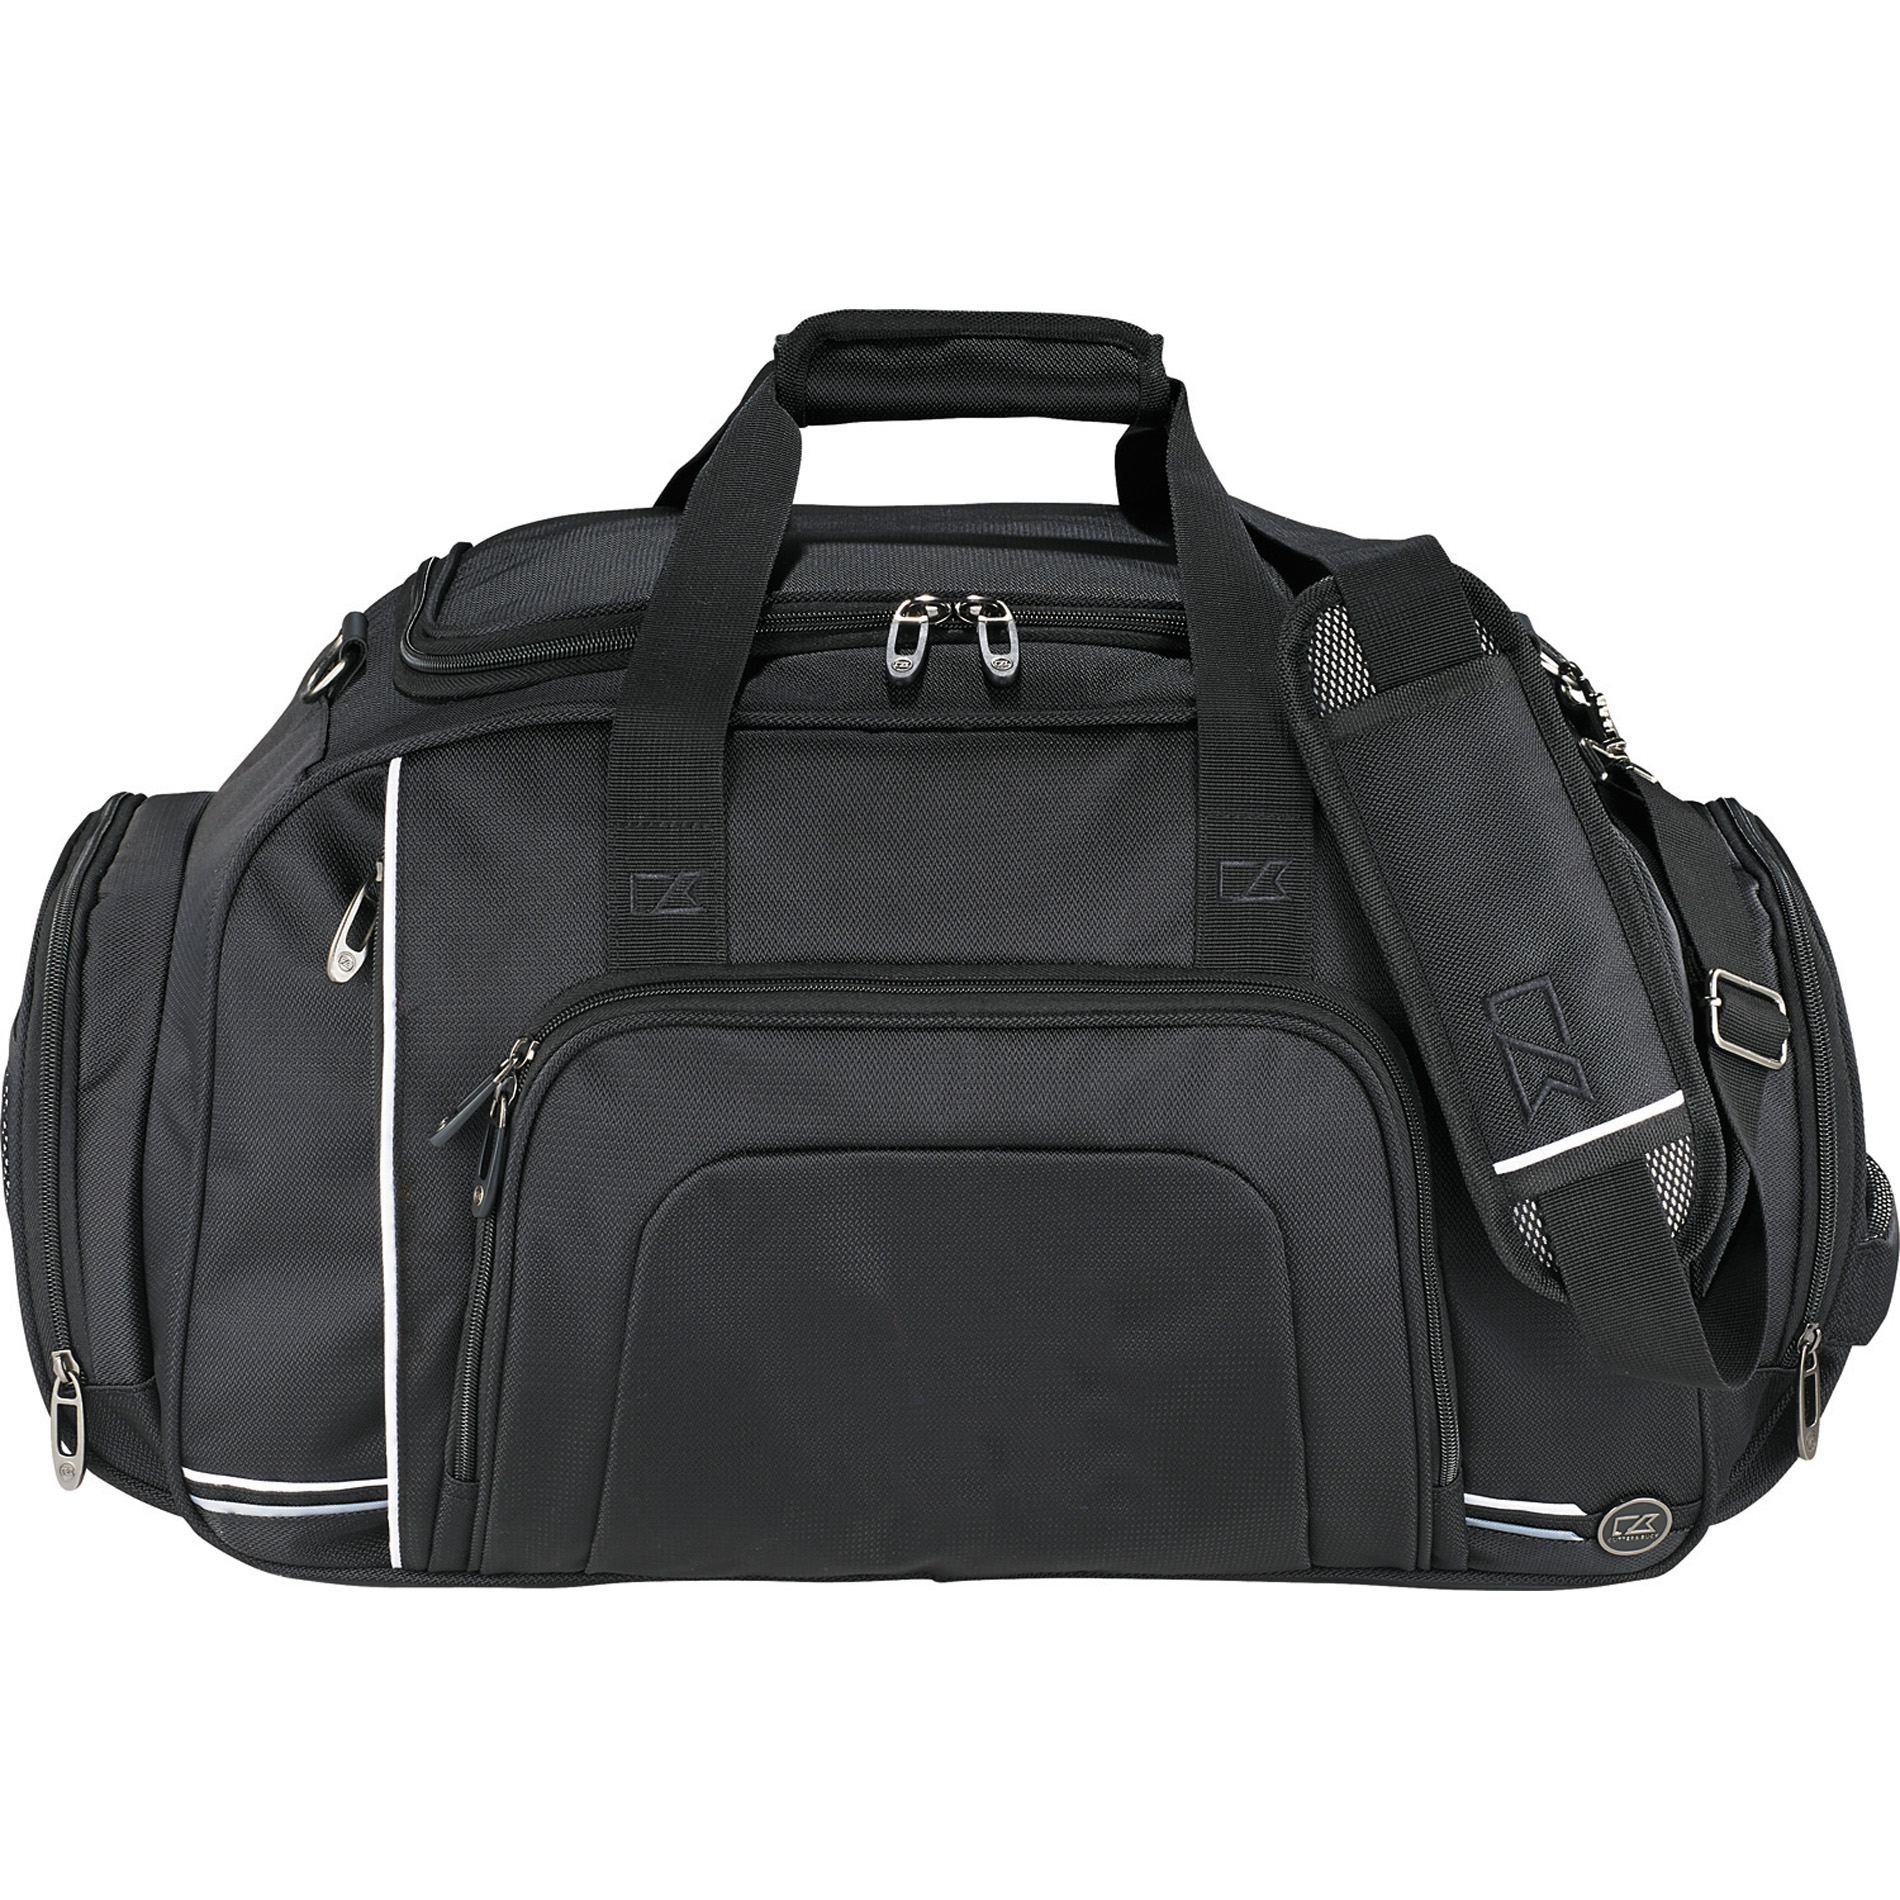 "Cutter & Buck 9860-62 - Tour 22"" Deluxe Duffel Bag"